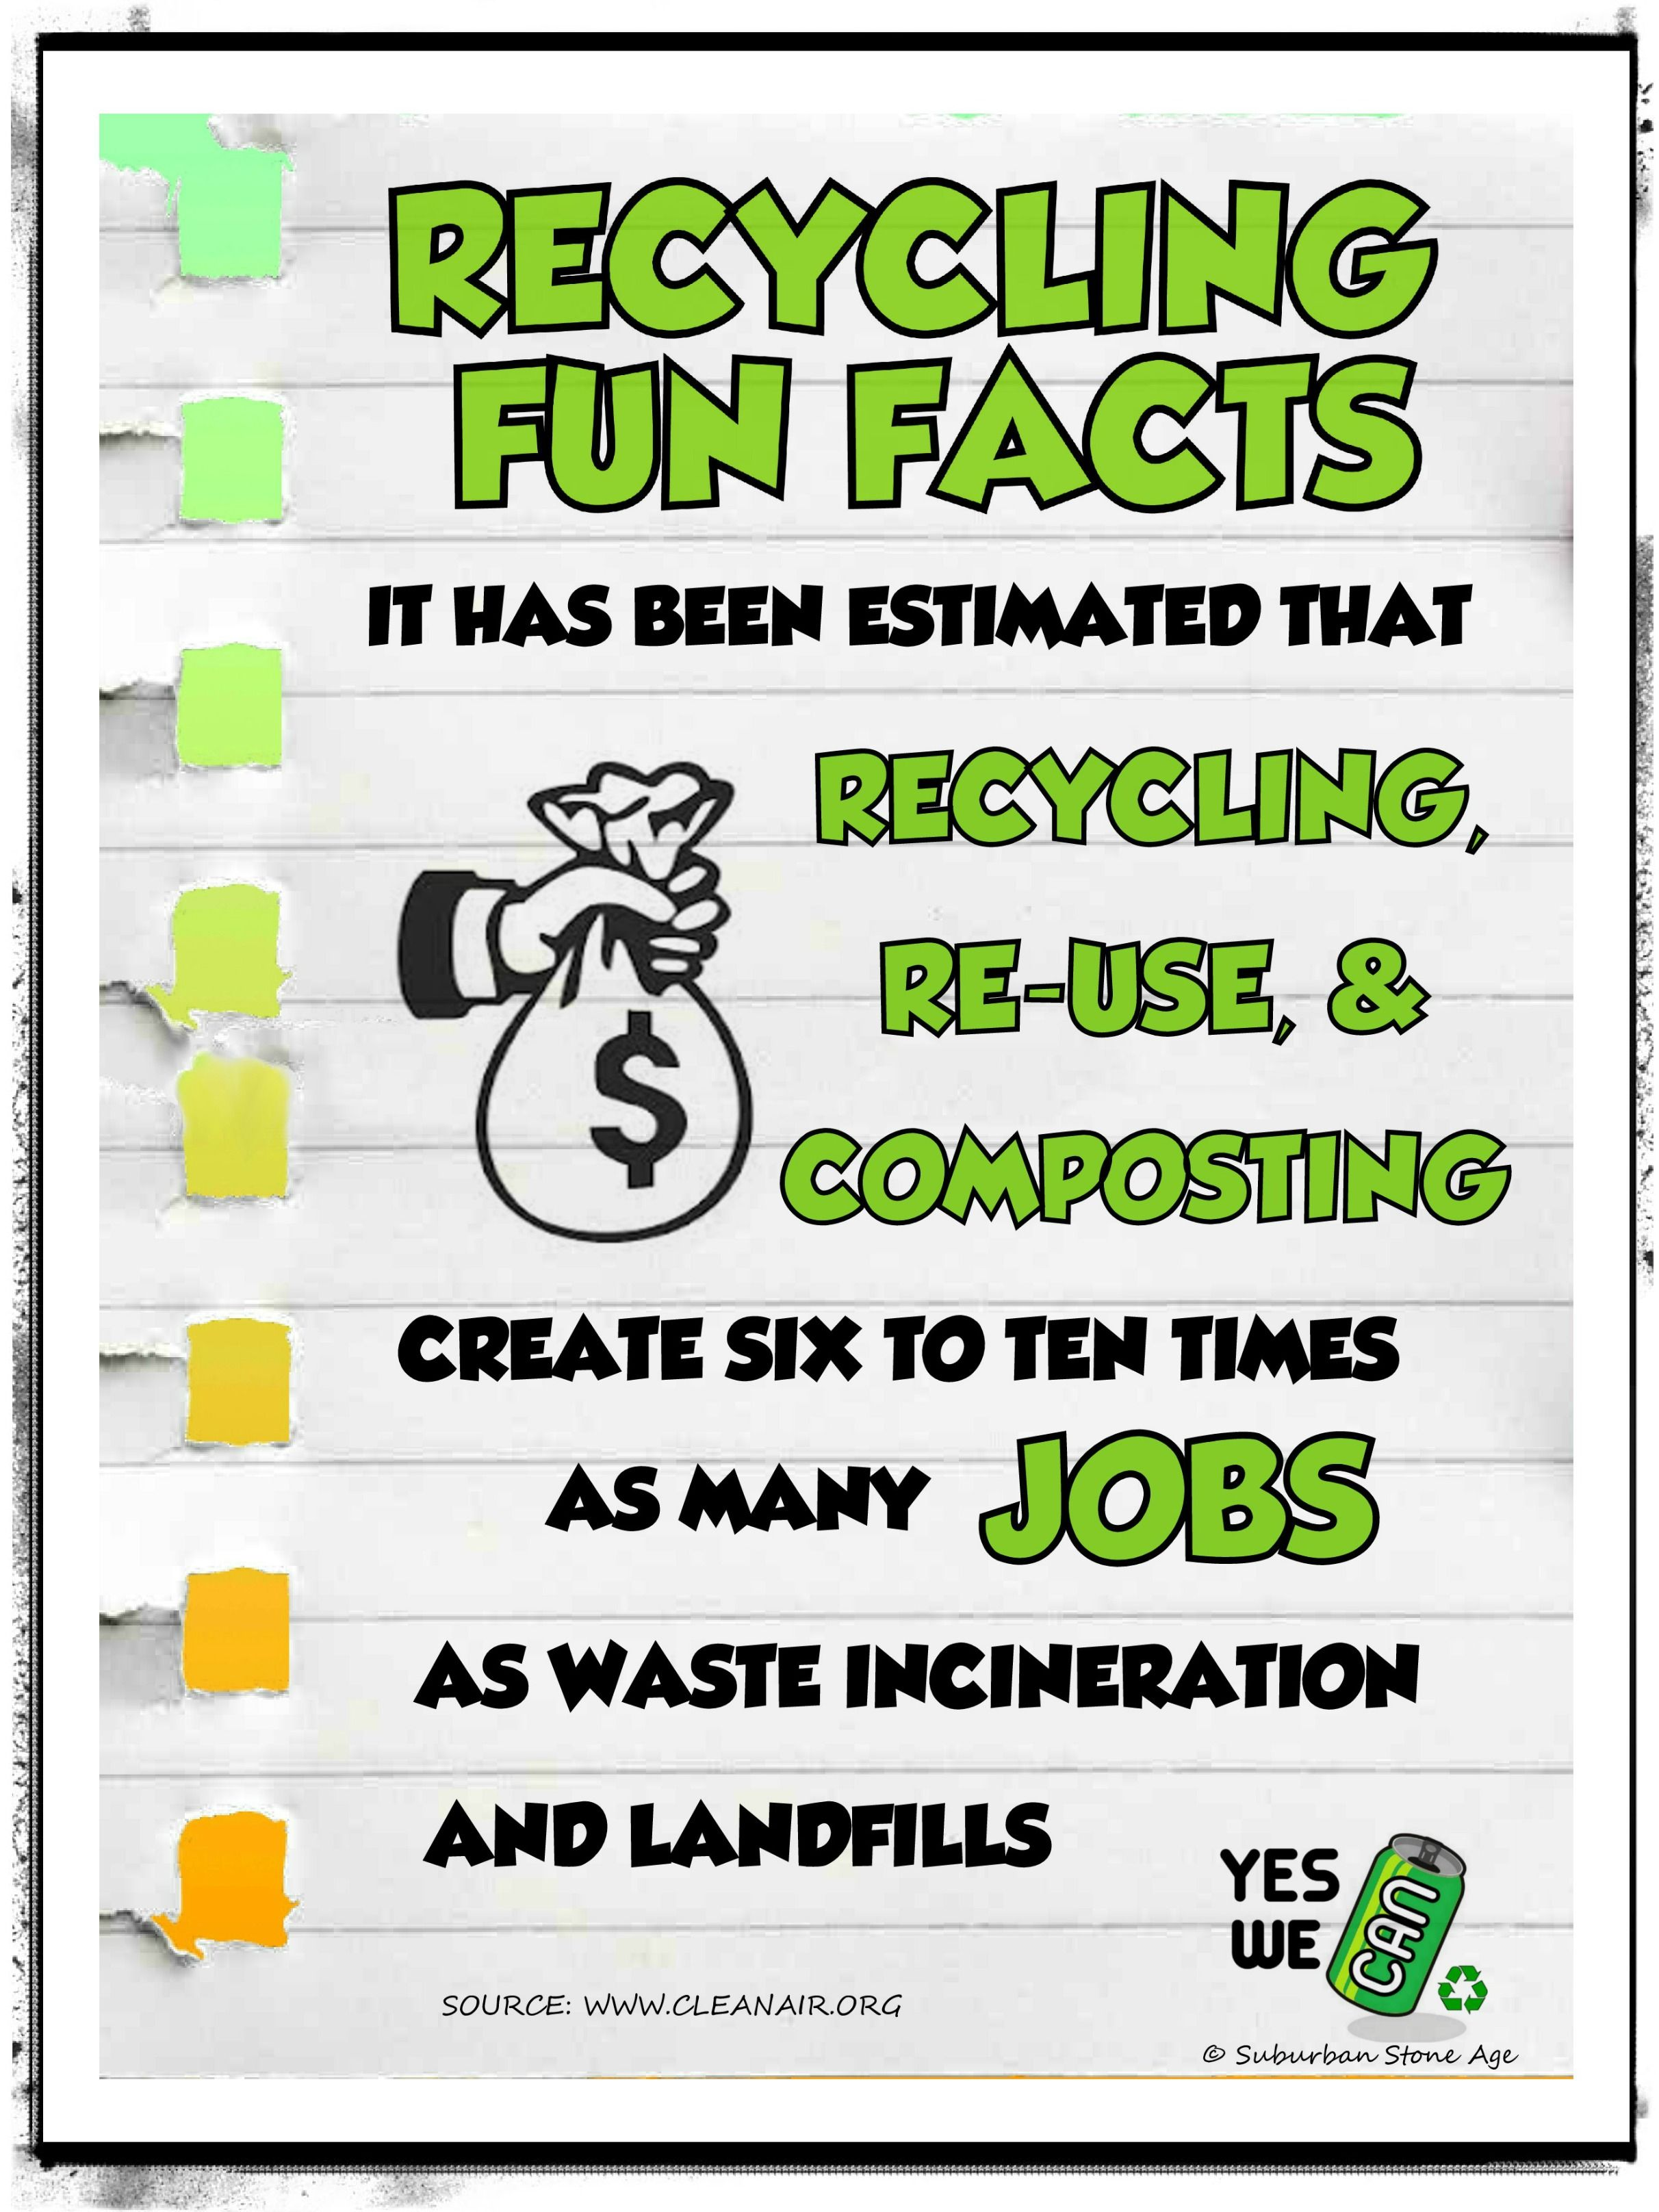 Recycling Fun Facts